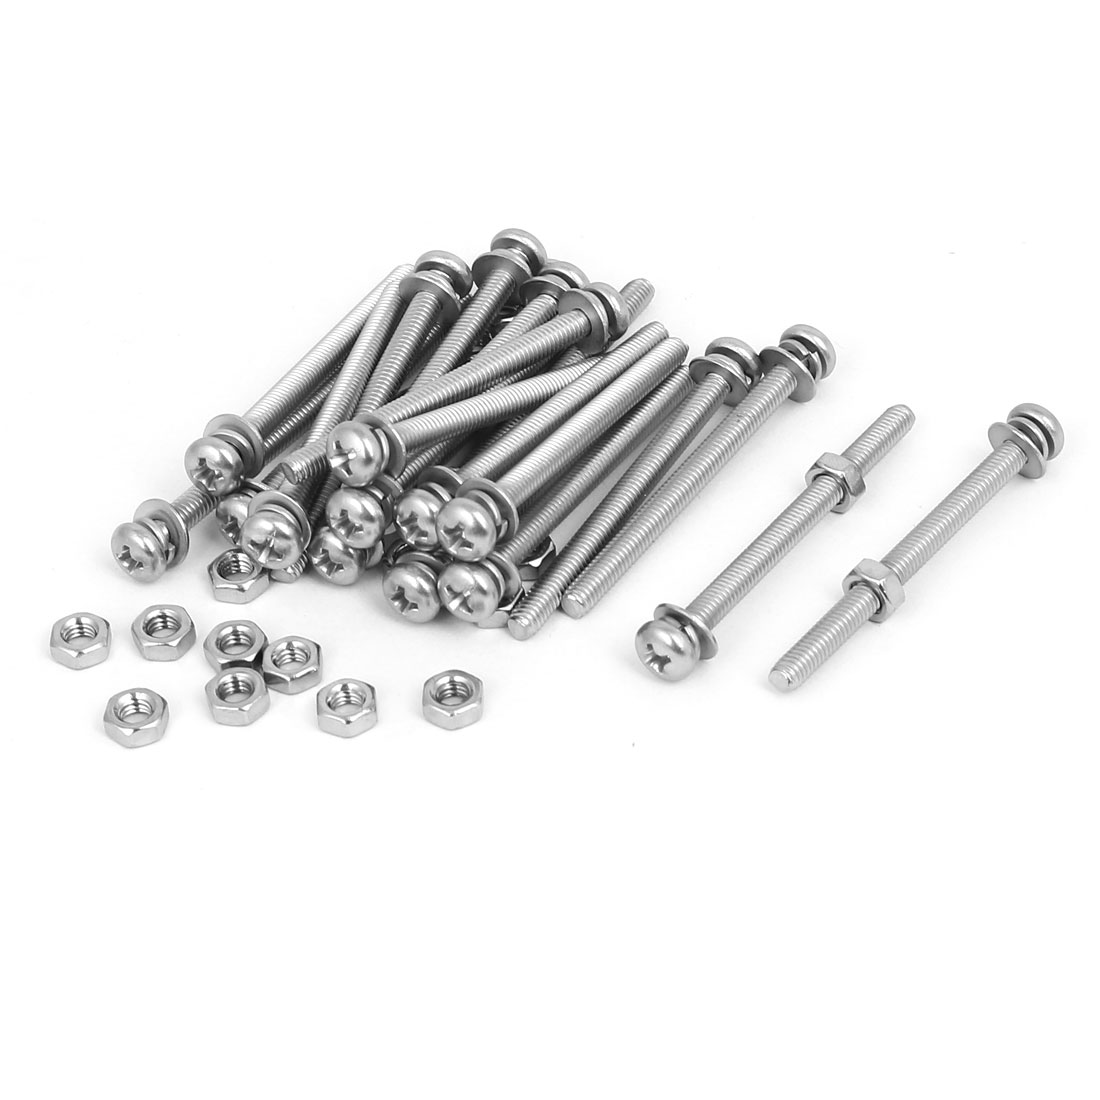 M4 x 50mm 304 Stainless Steel Phillips Pan Head Screws Nuts w Washers 20 Sets